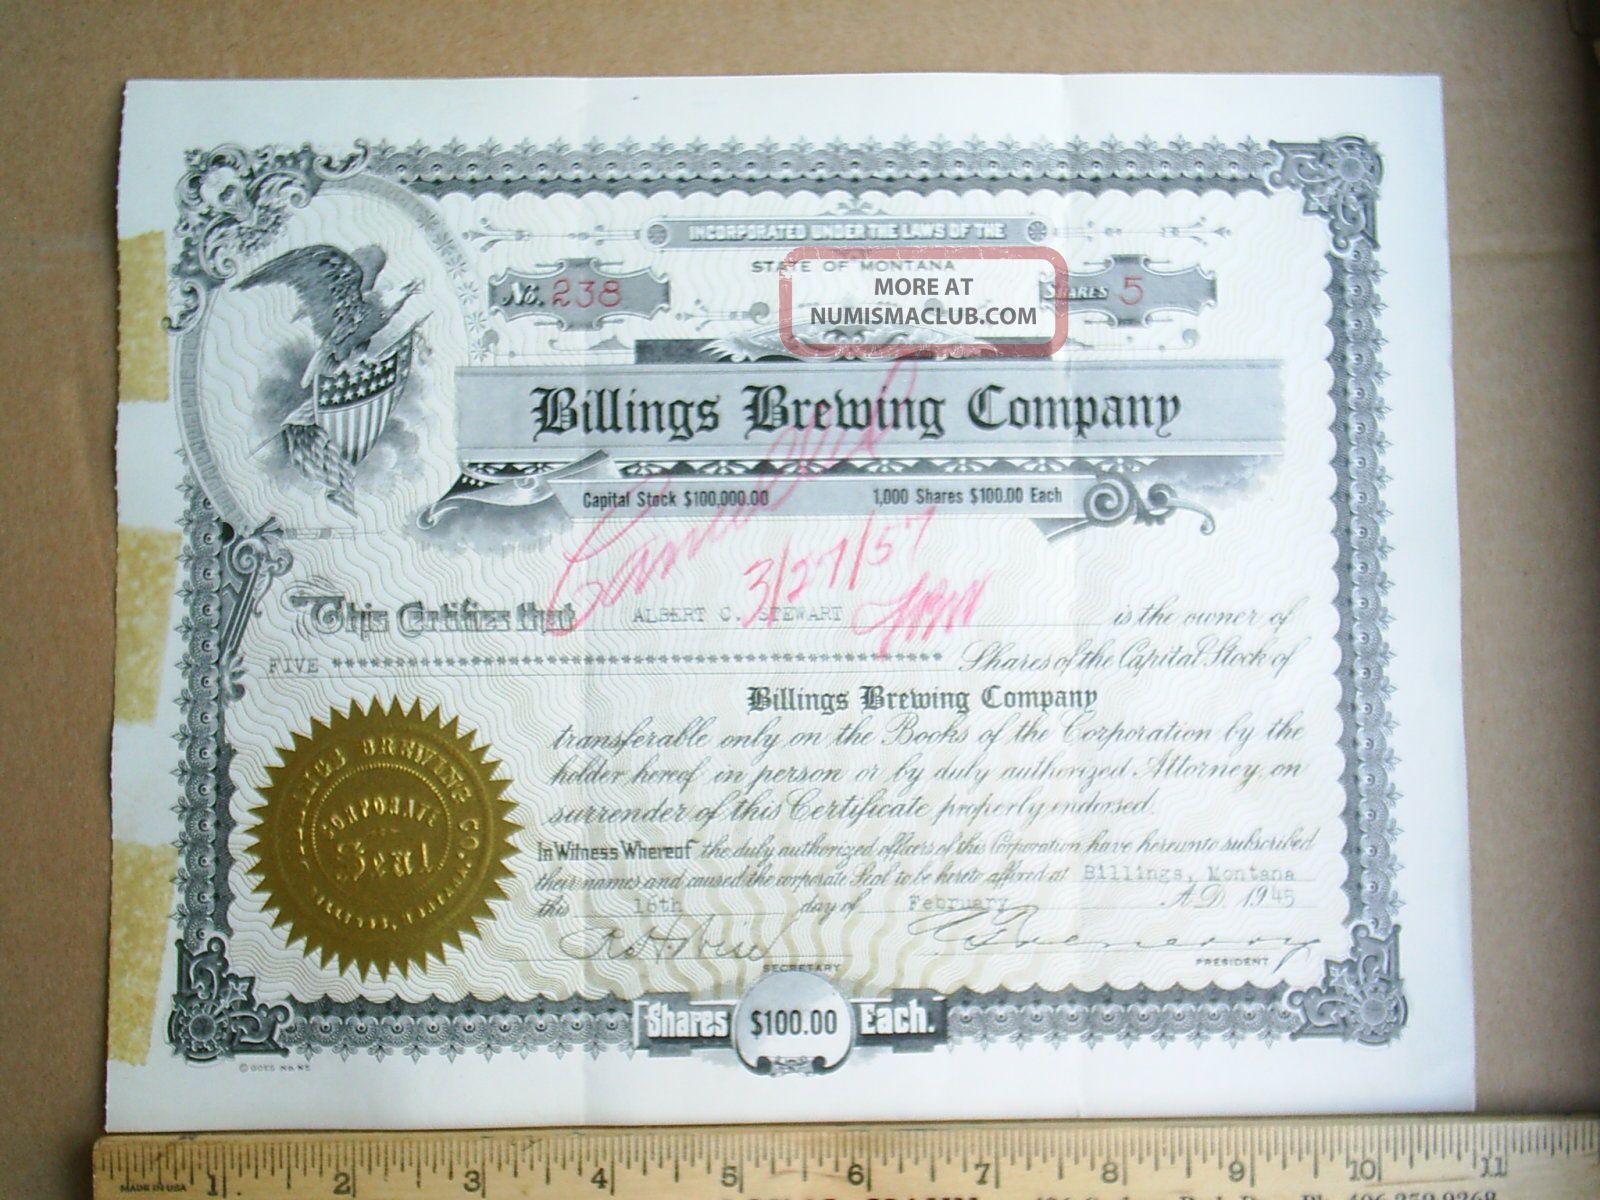 Vintage 1945 Billings Brewing Co.  Stock Certificate (yellowstone,  Montana,  Beer) Stocks & Bonds, Scripophily photo